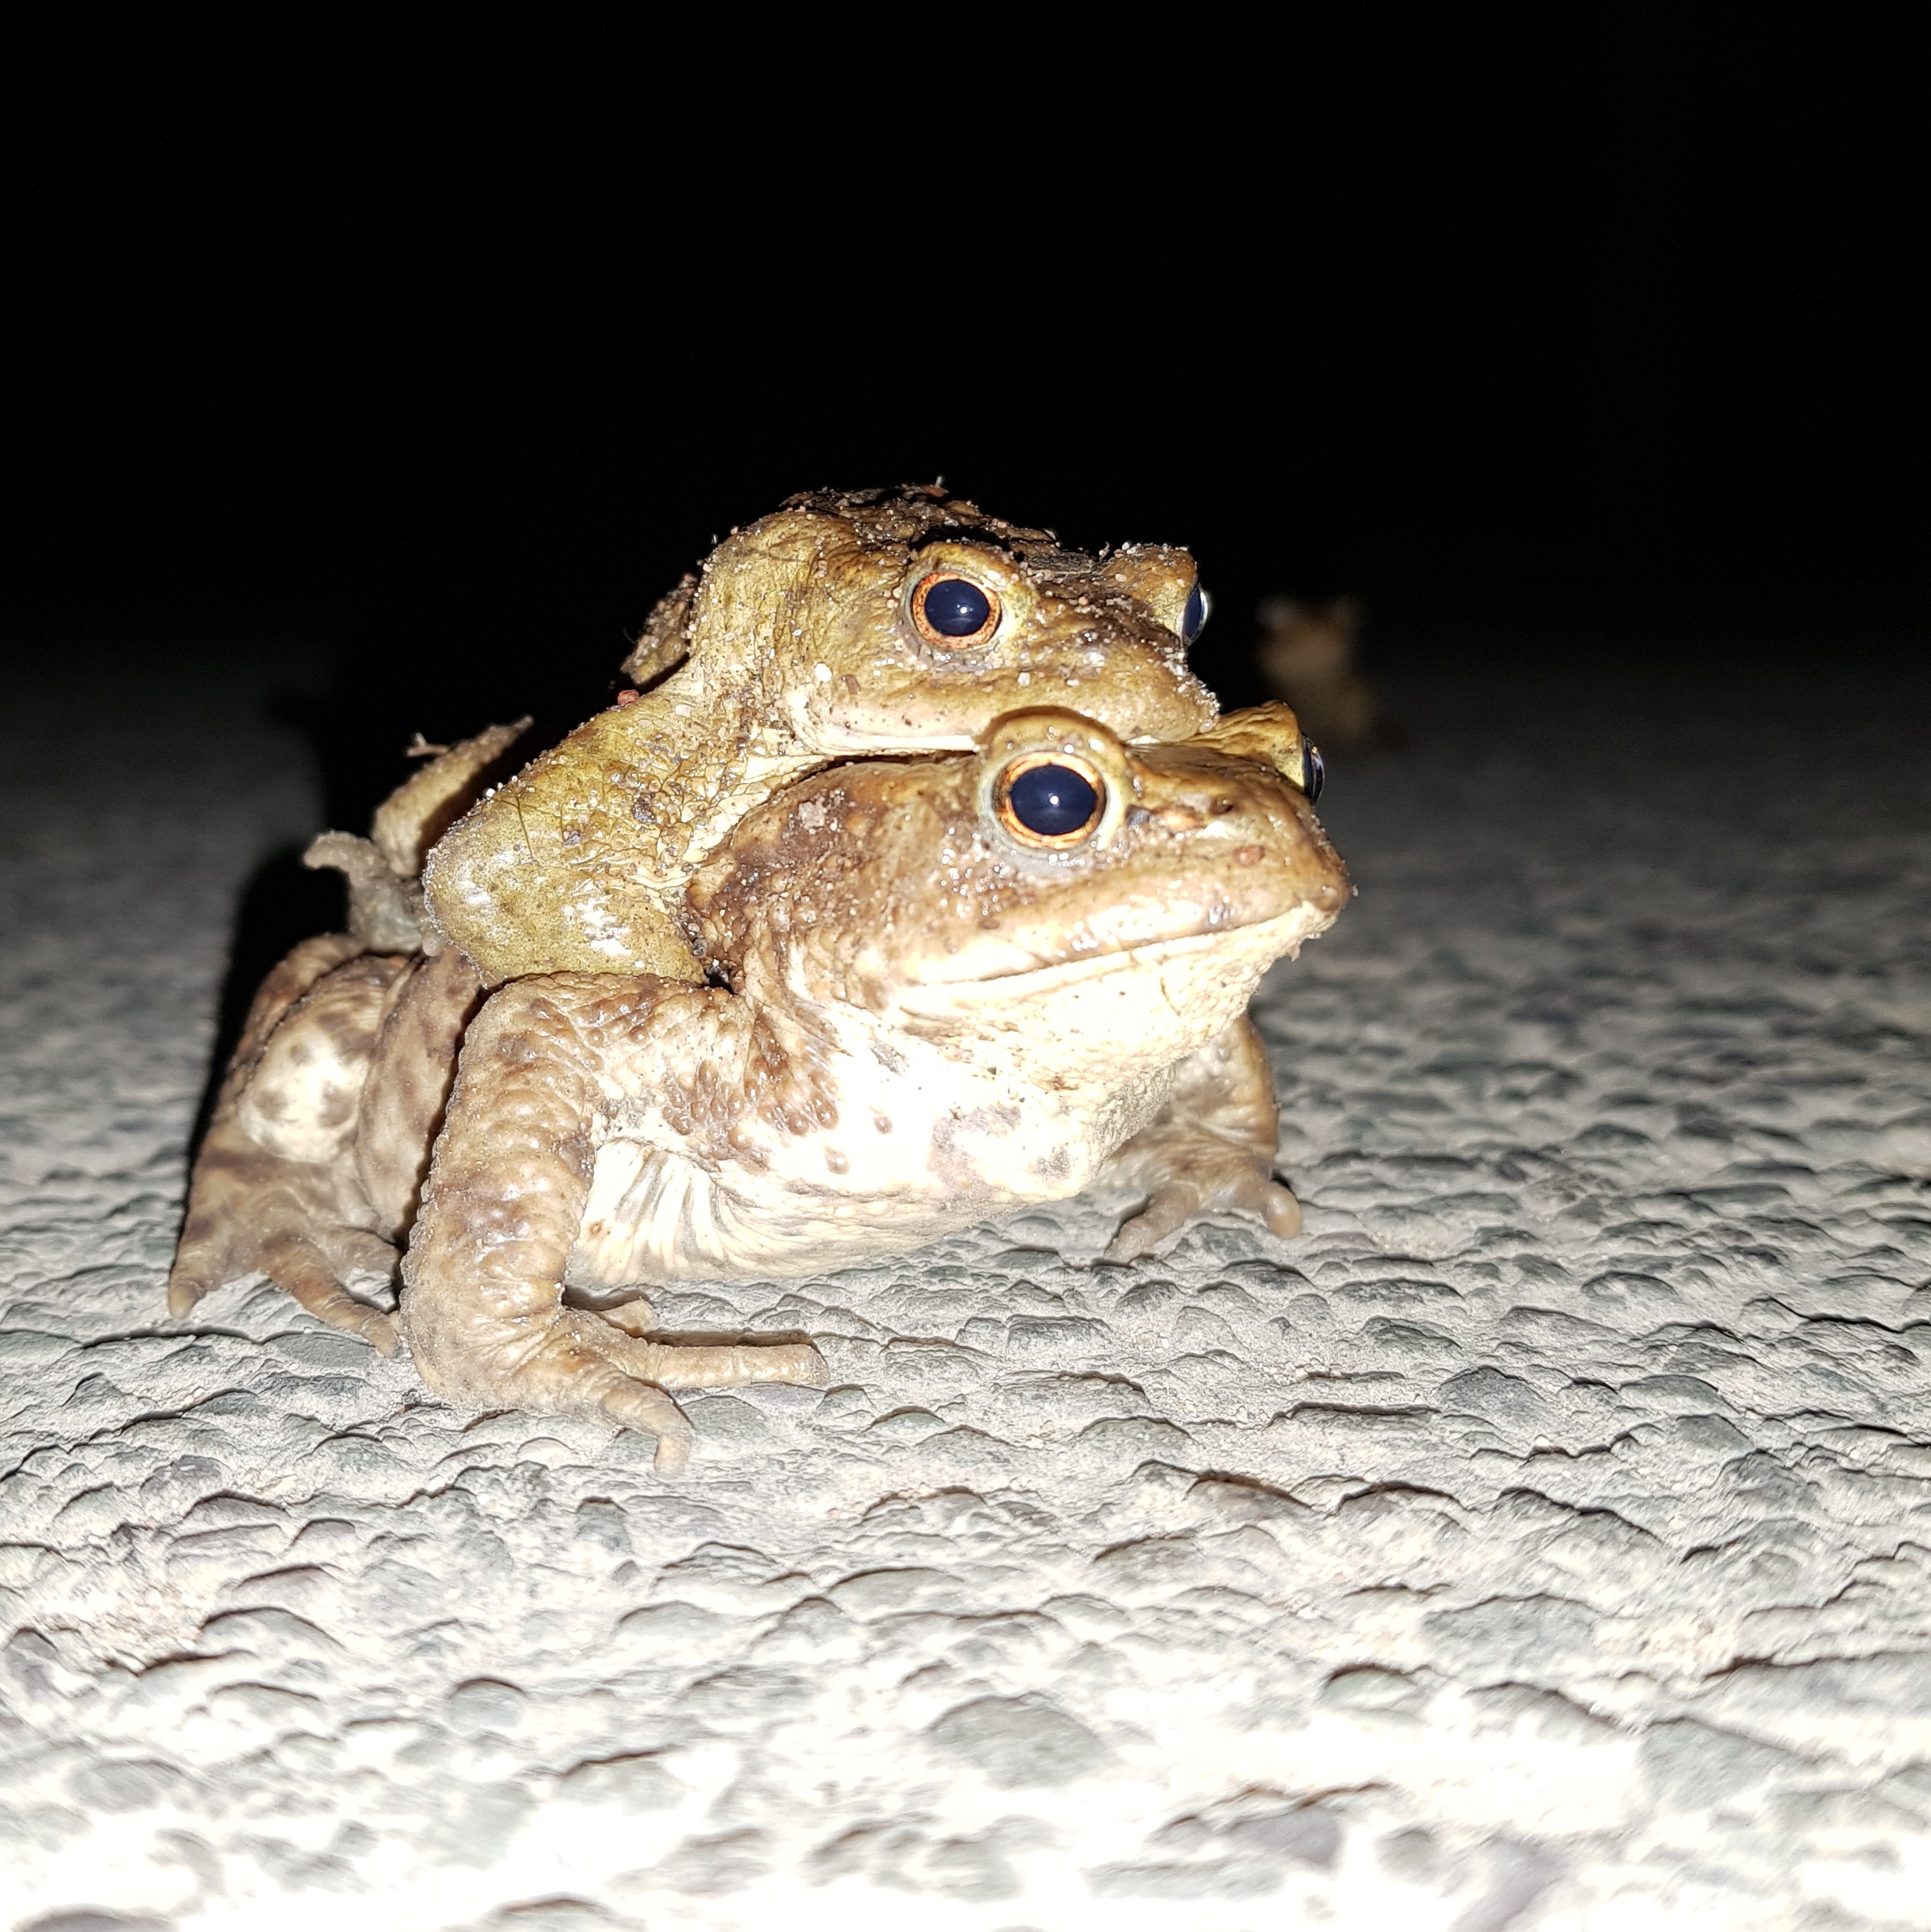 Two toads piggybacking at night with one toad watching in the distance